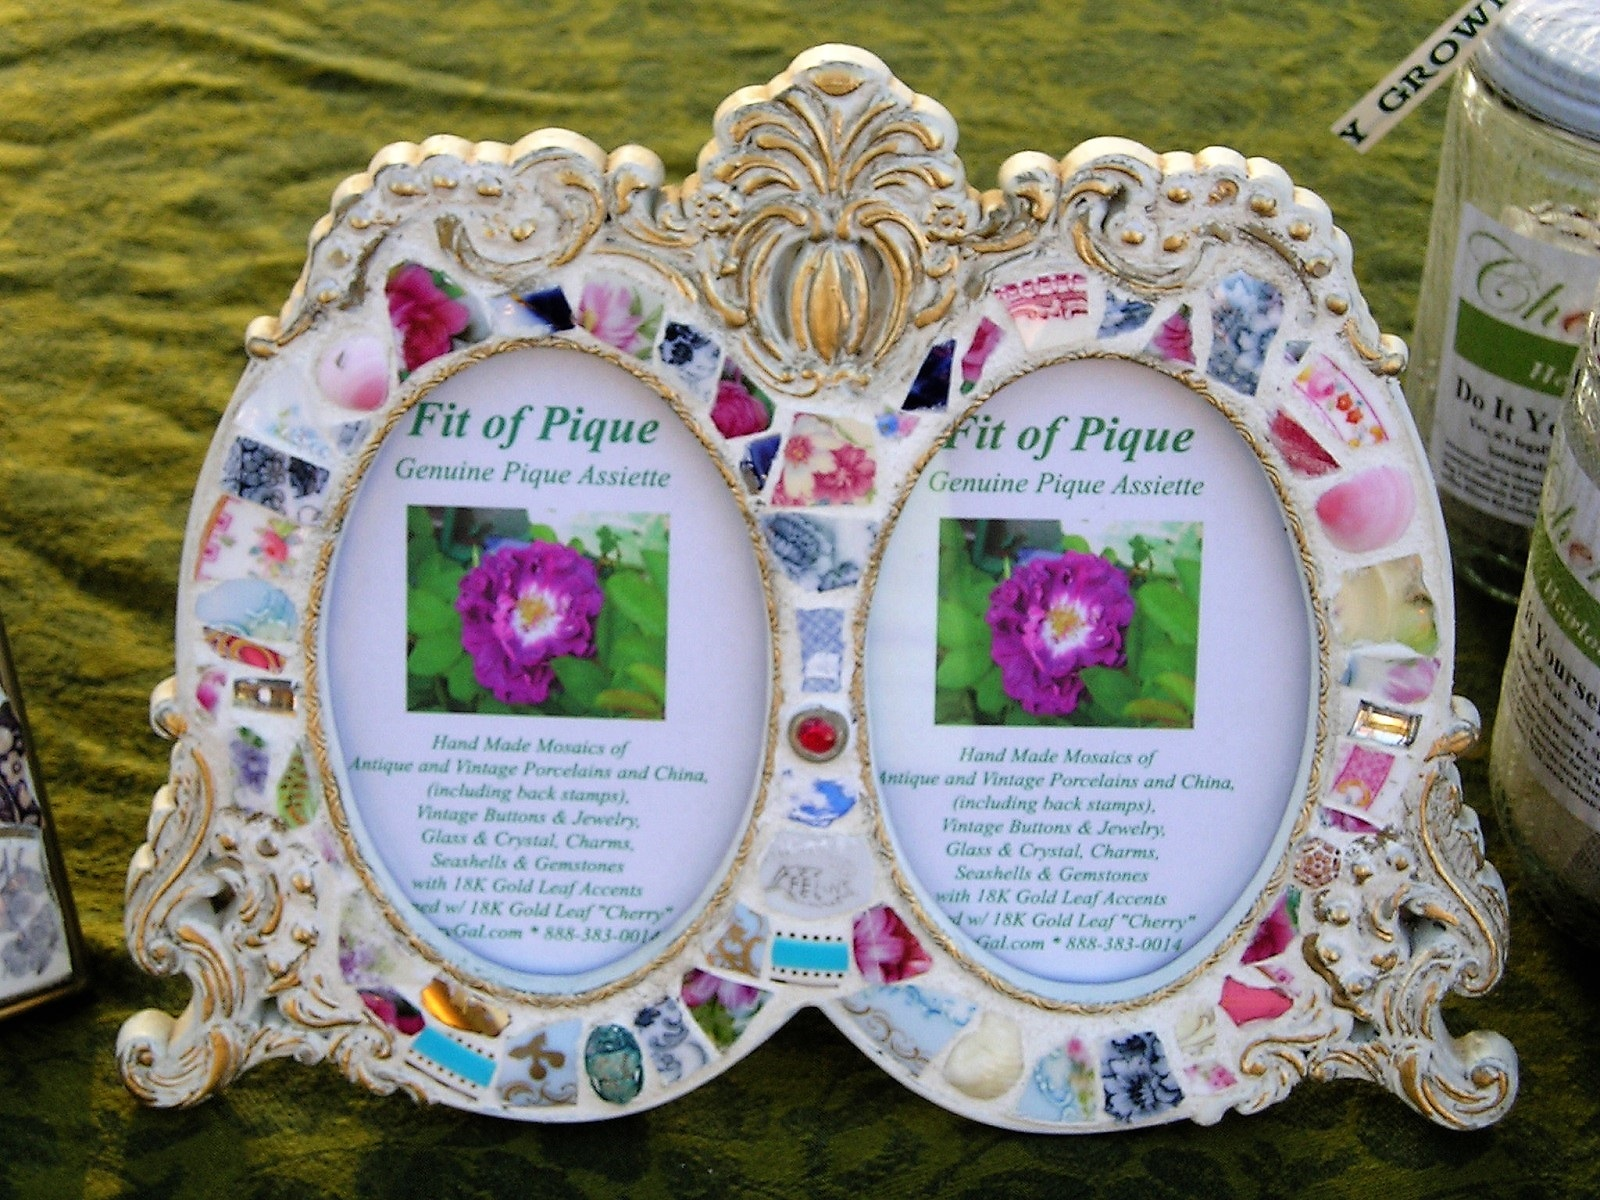 Fit Of Pique Genuine Pique Assiette Photo Frame Double Oval